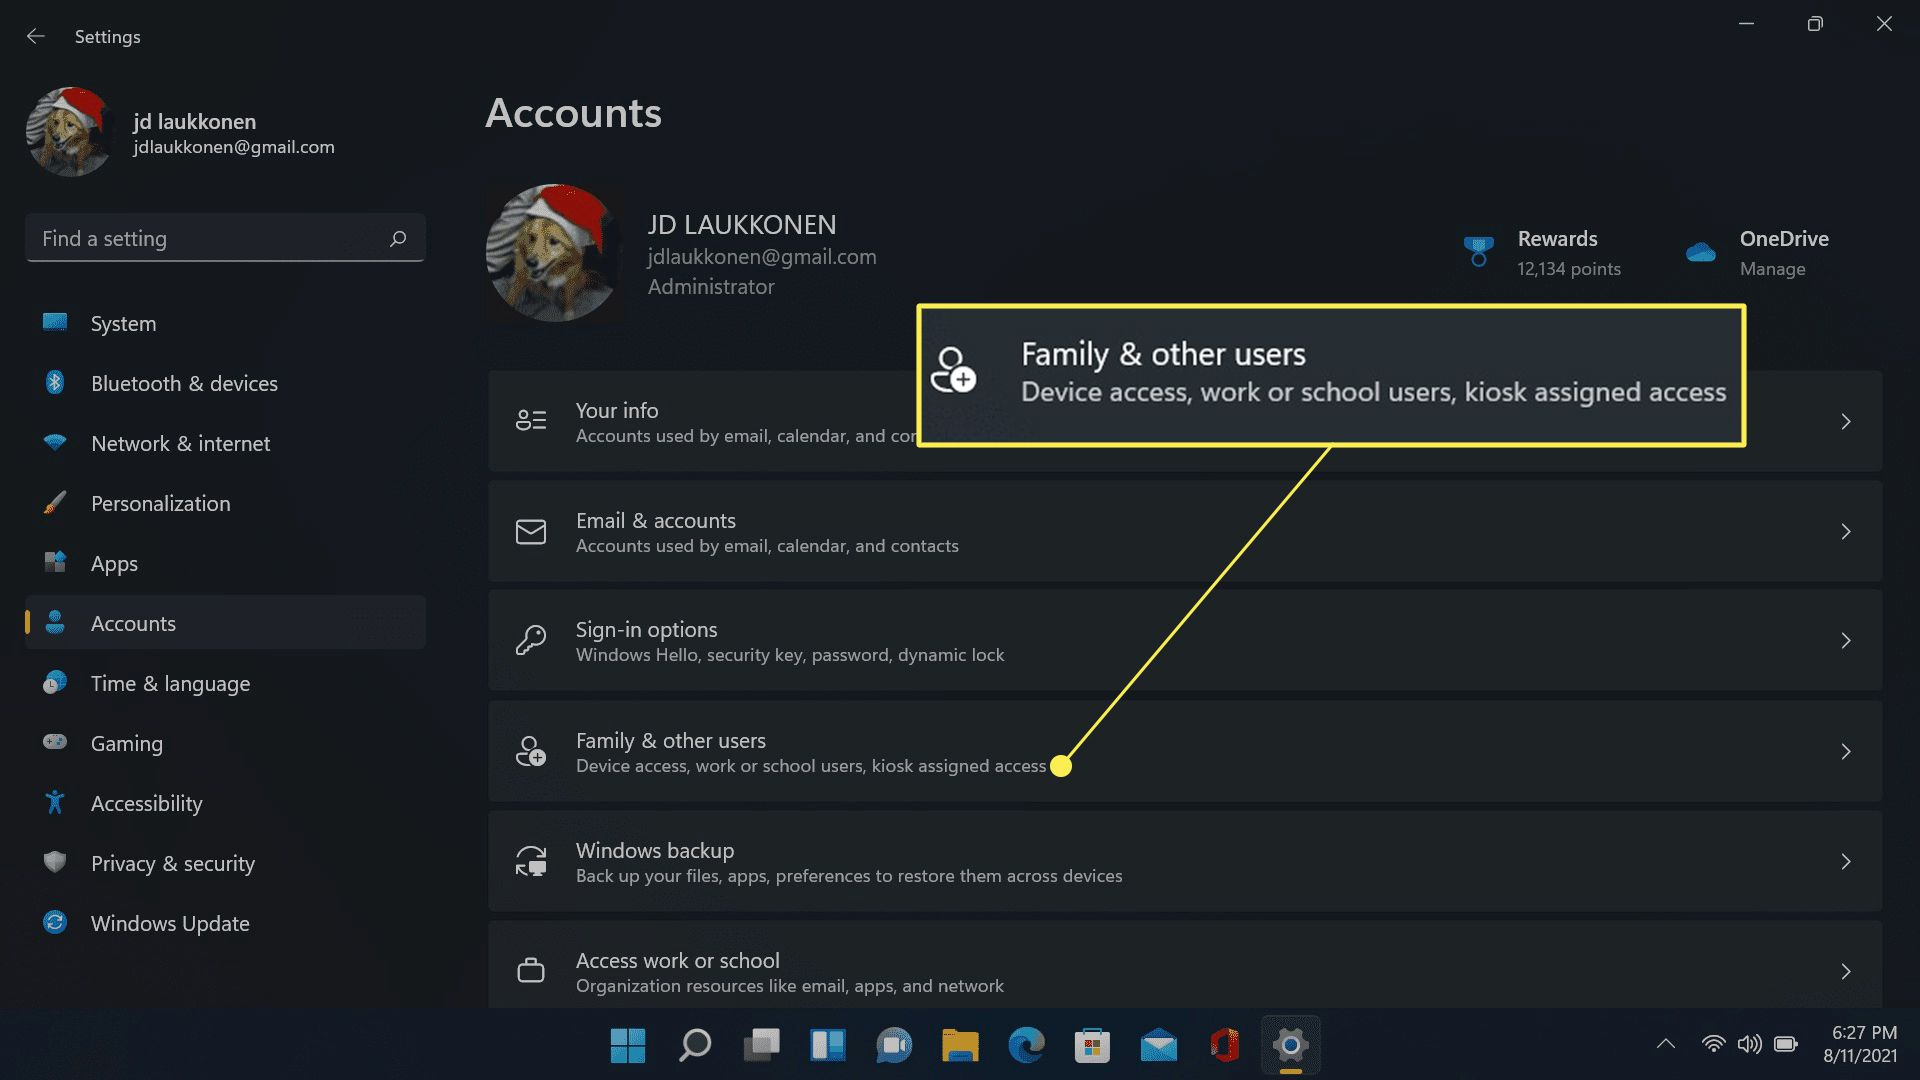 Family & other users highlighted in Windows 11 account settings.